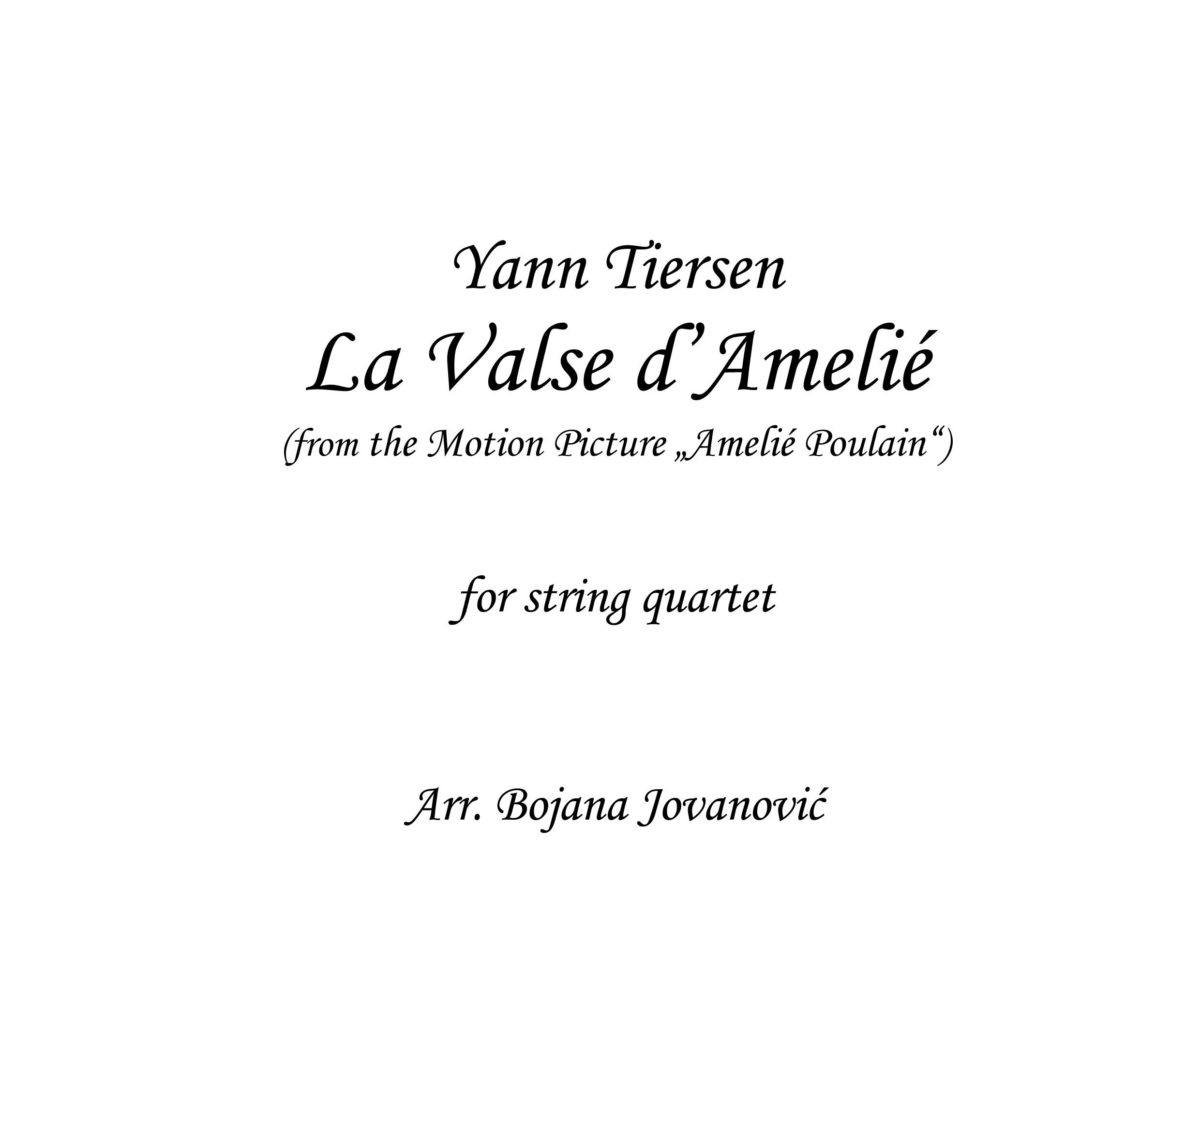 La Valse d'Amelie (Yann Tiersen) - Sheet Music